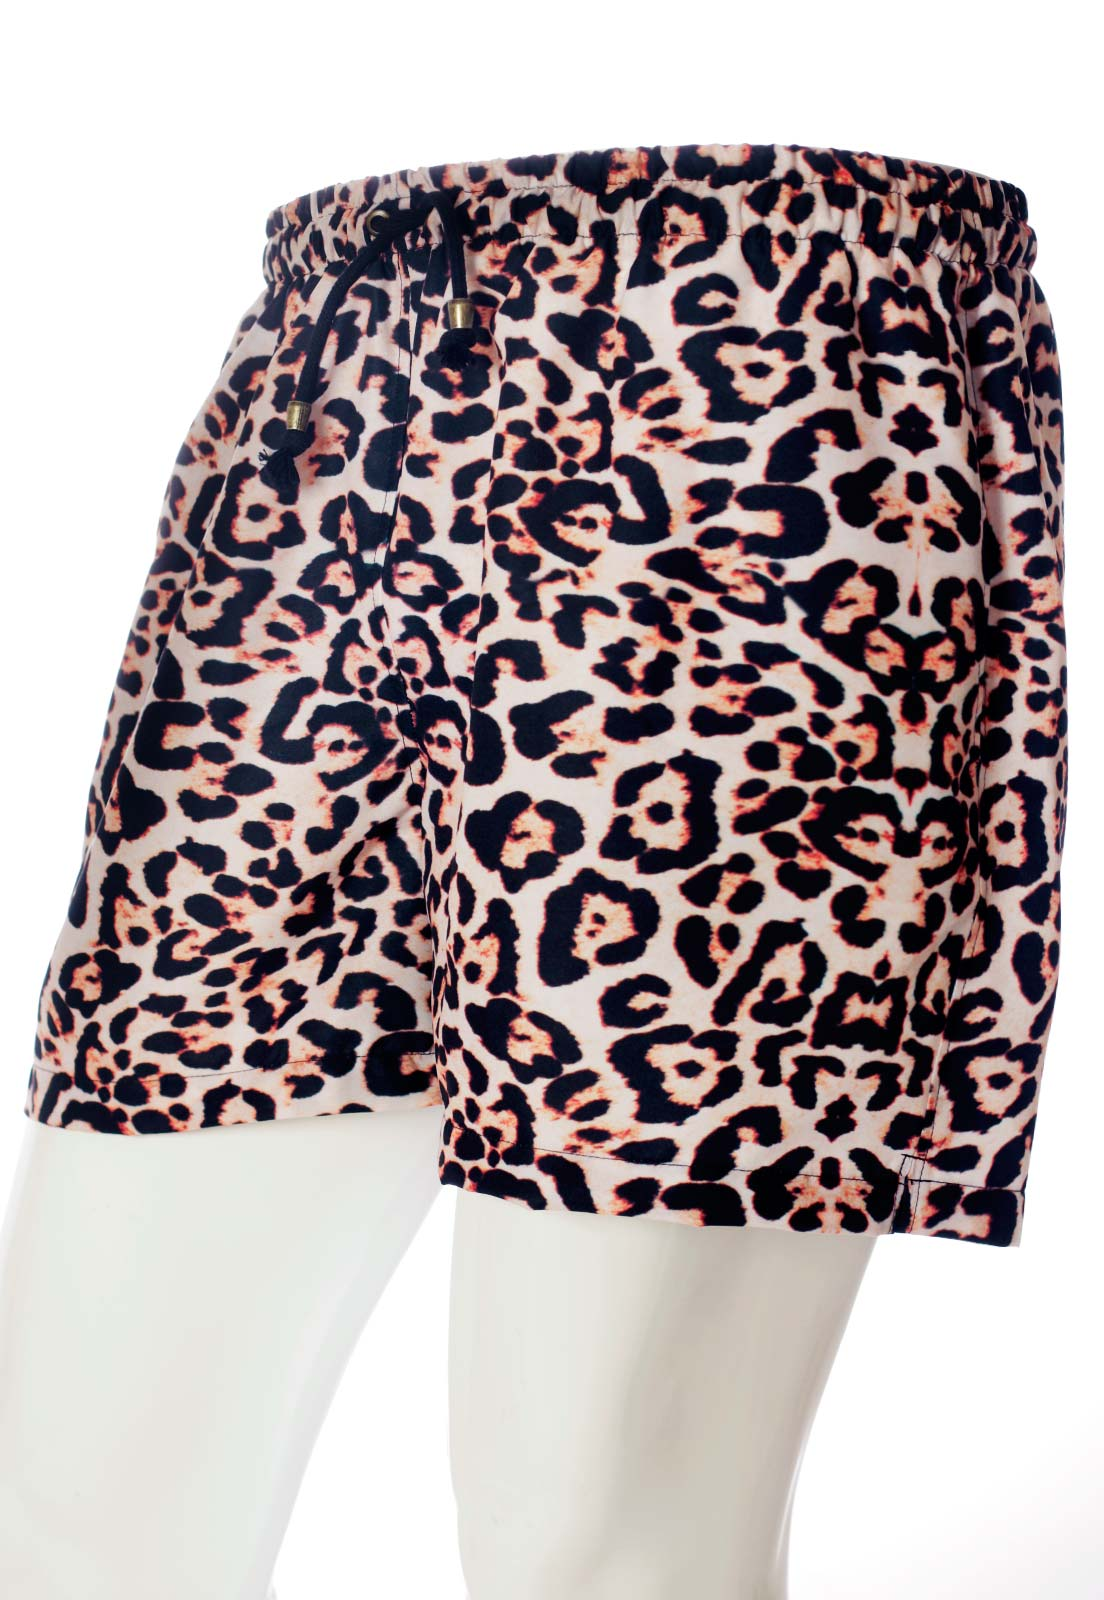 SHORTS ESTAMPADO ANIMAL PRINT GUEPARDO UNISSEX